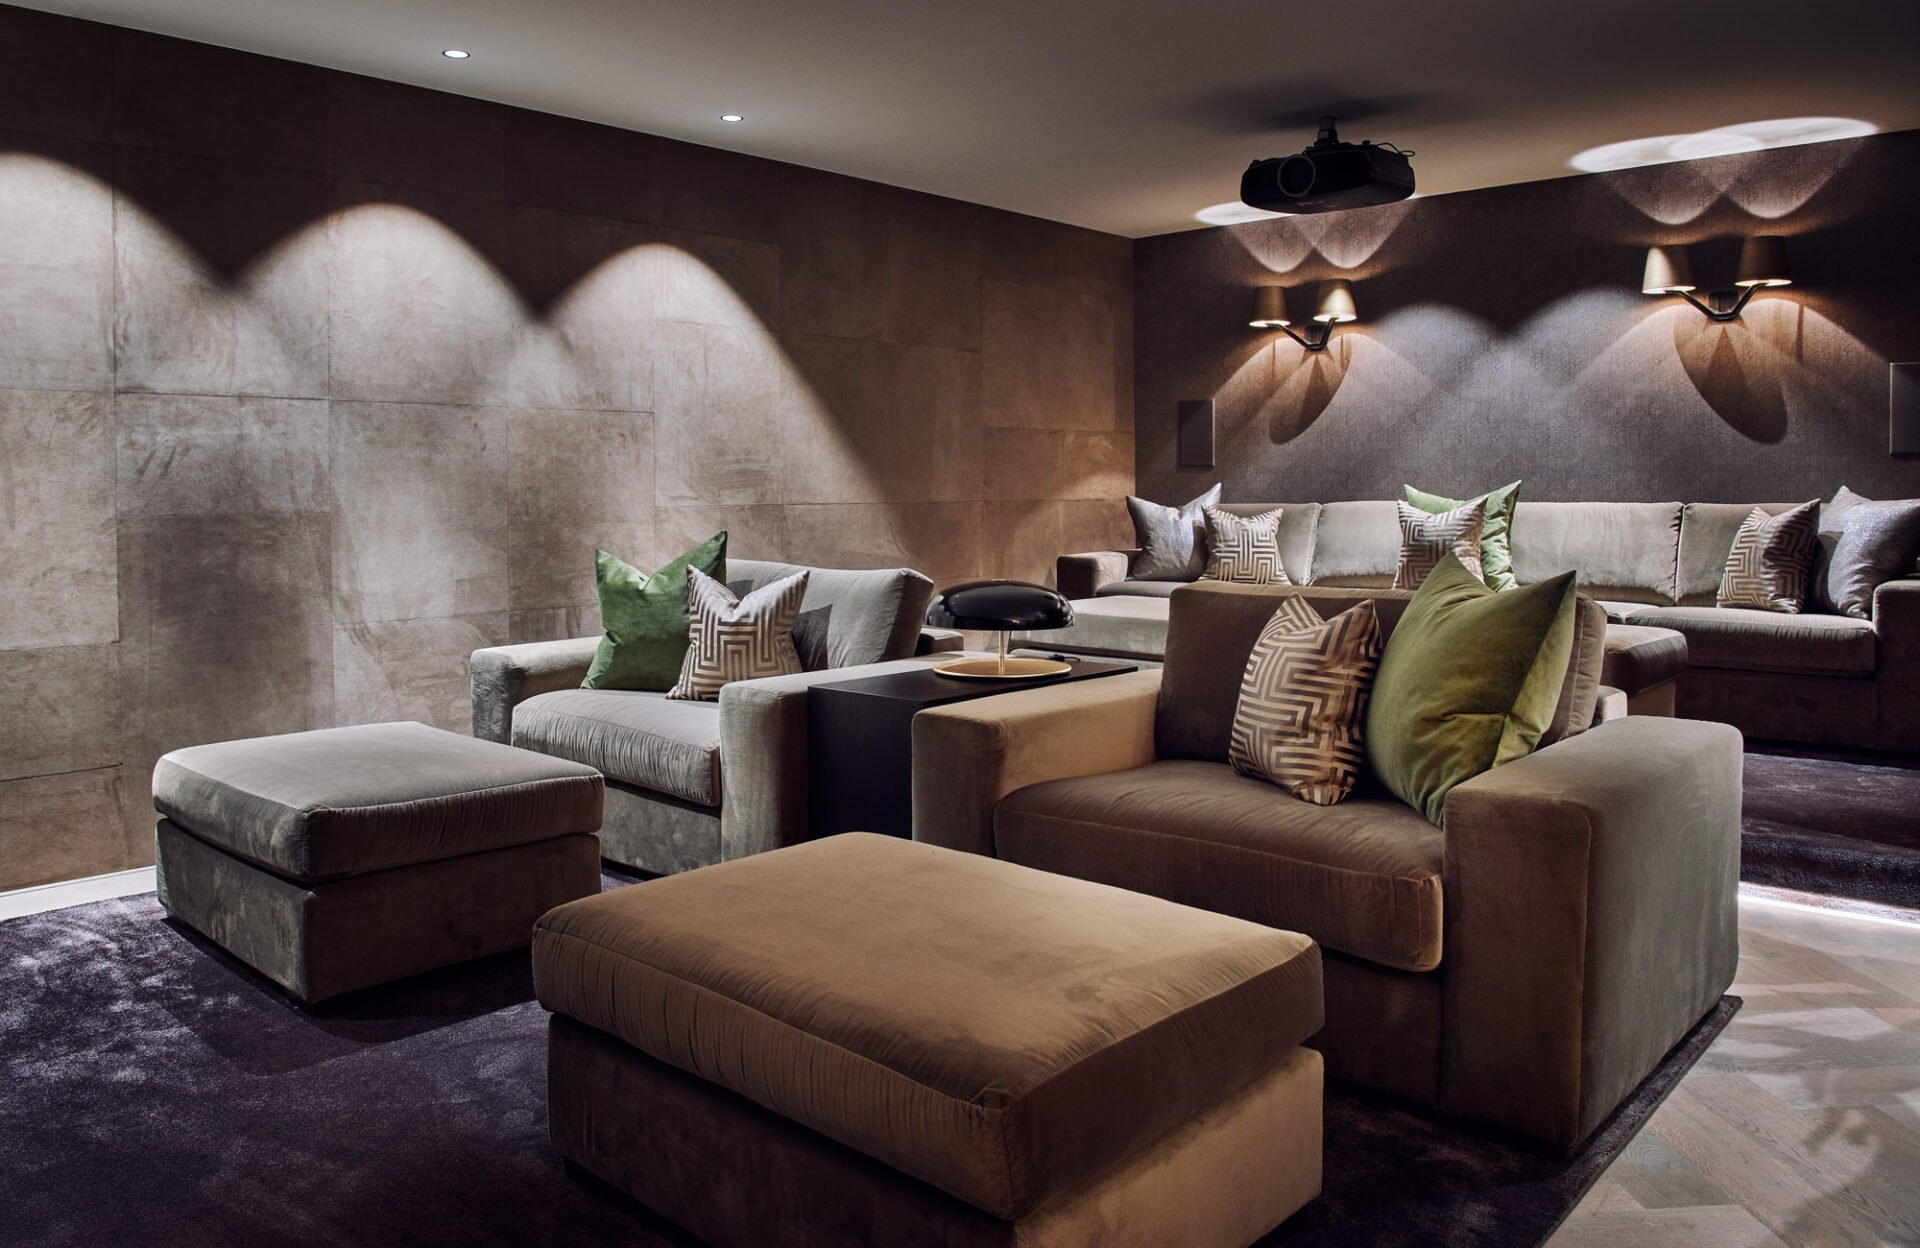 luxurious interior design cinema